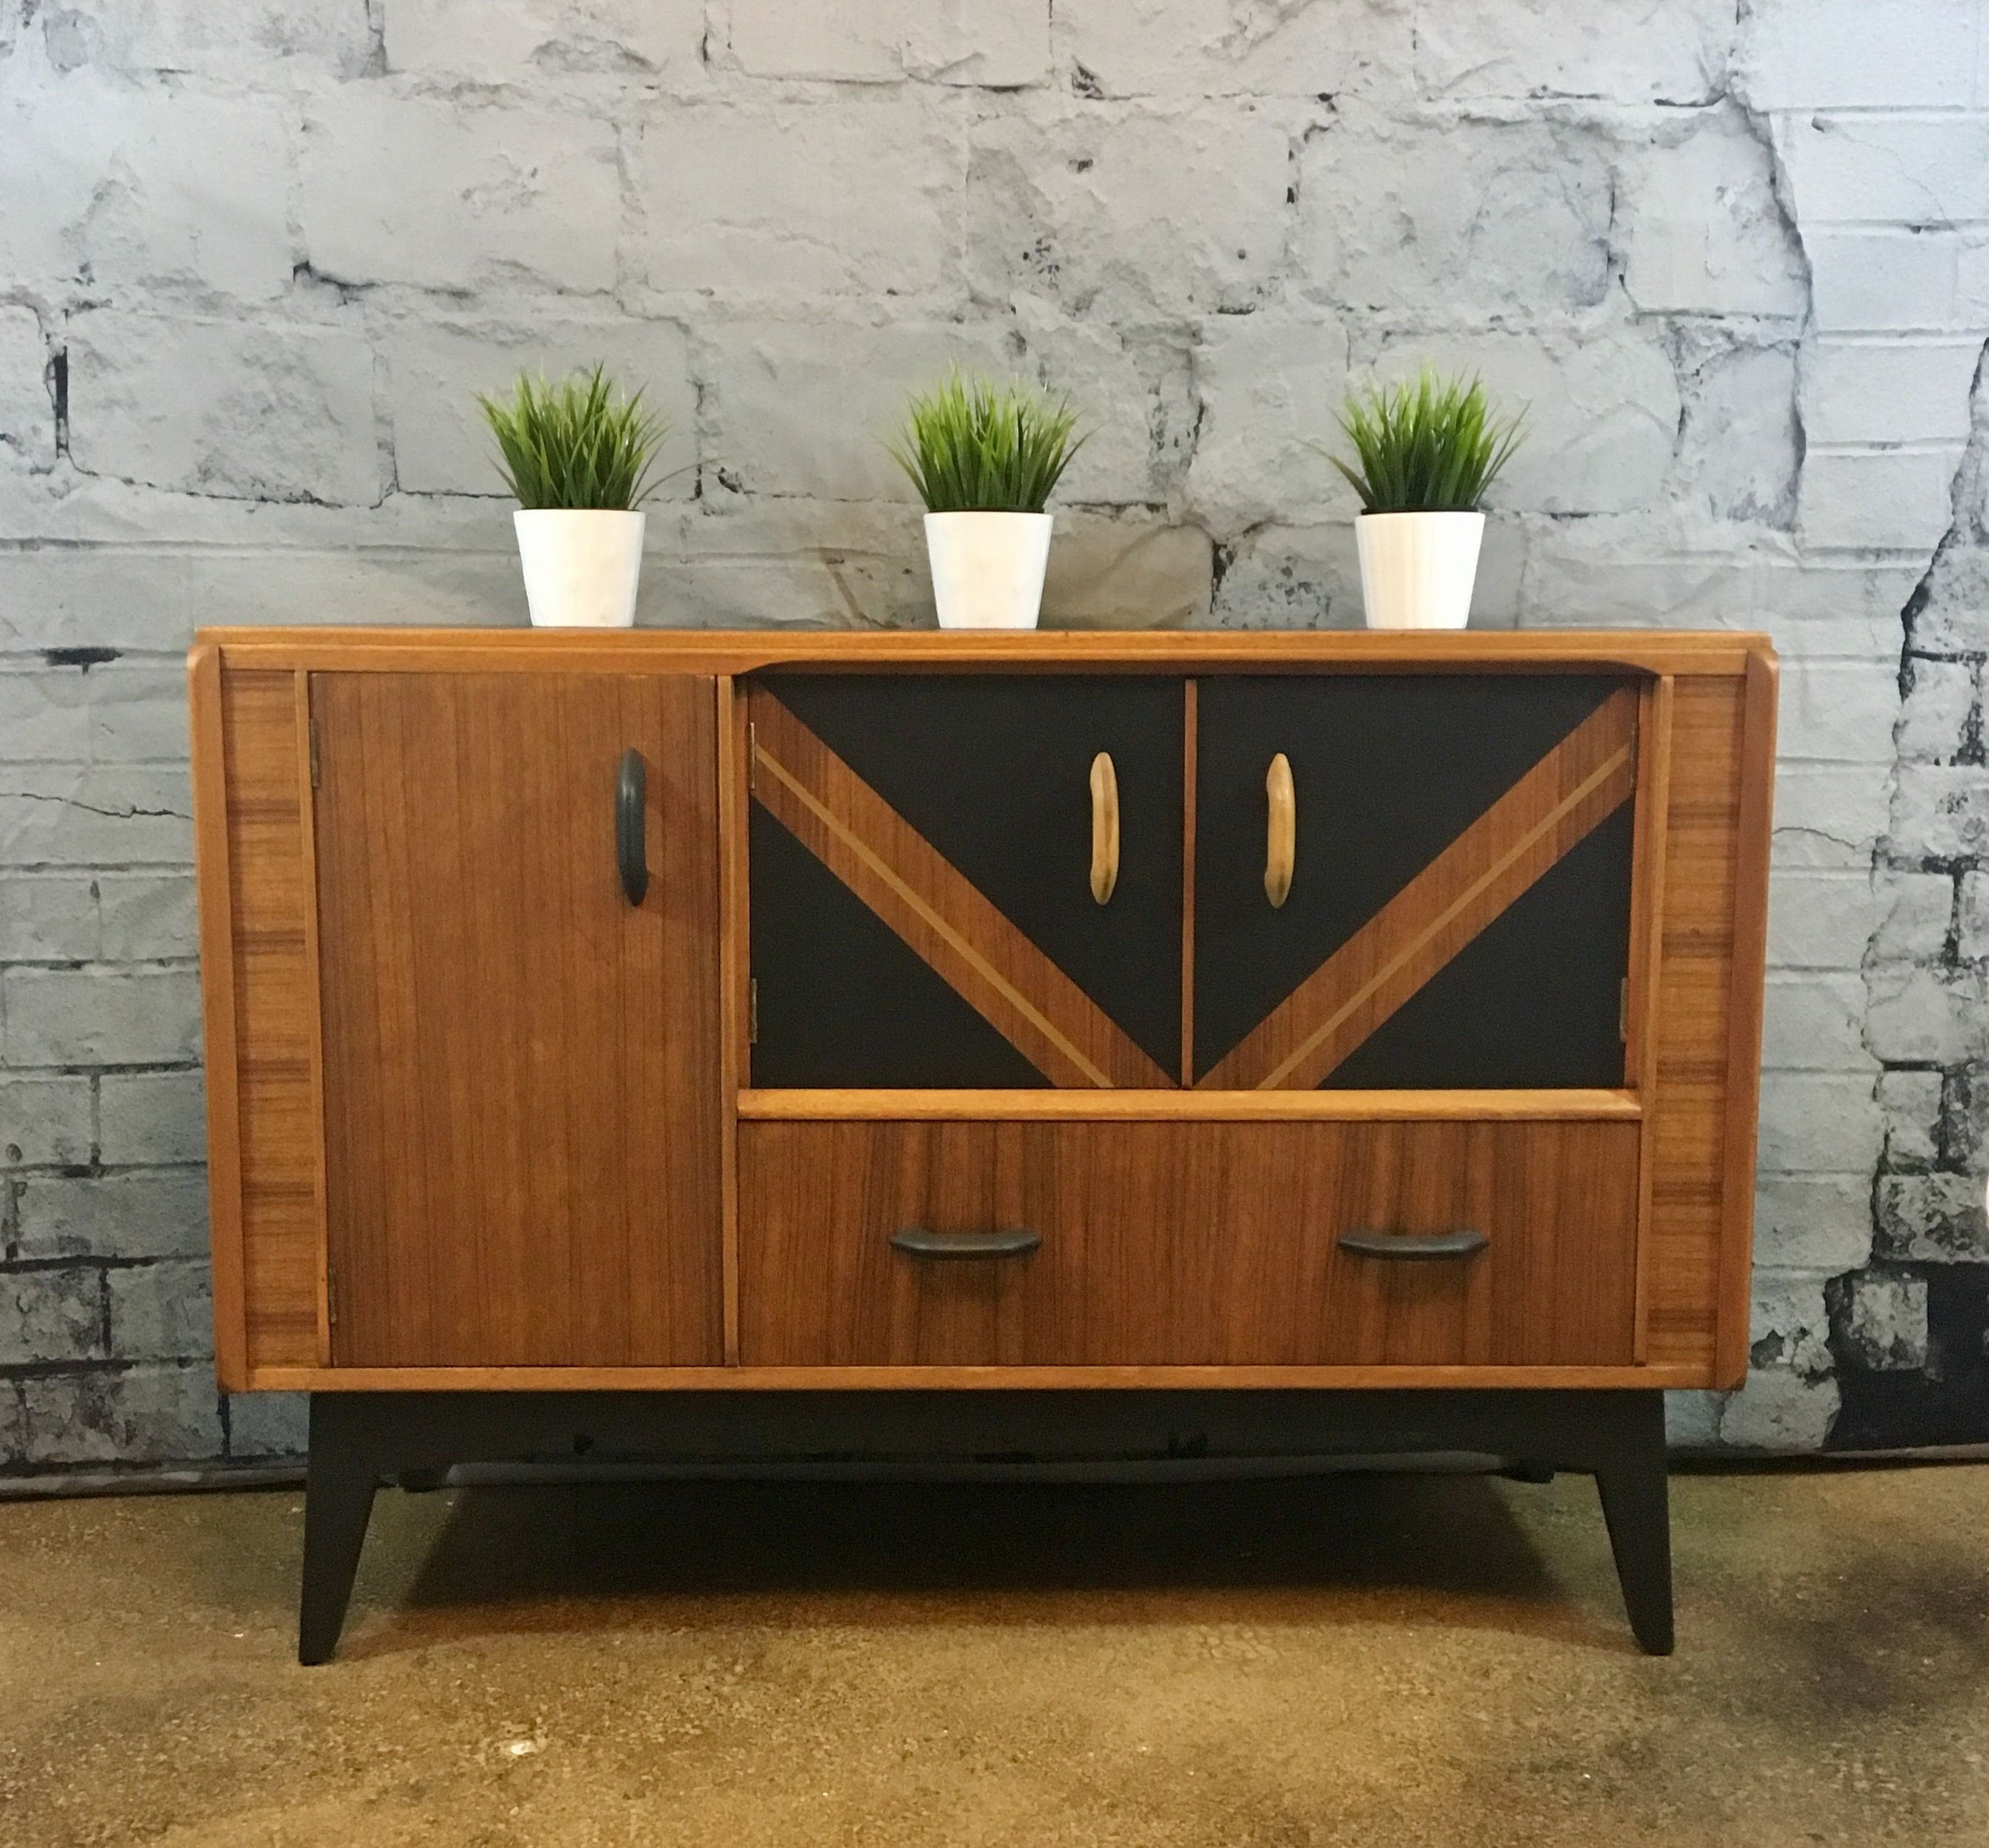 Early G Plan Brandon Sideboard given a new and updated look